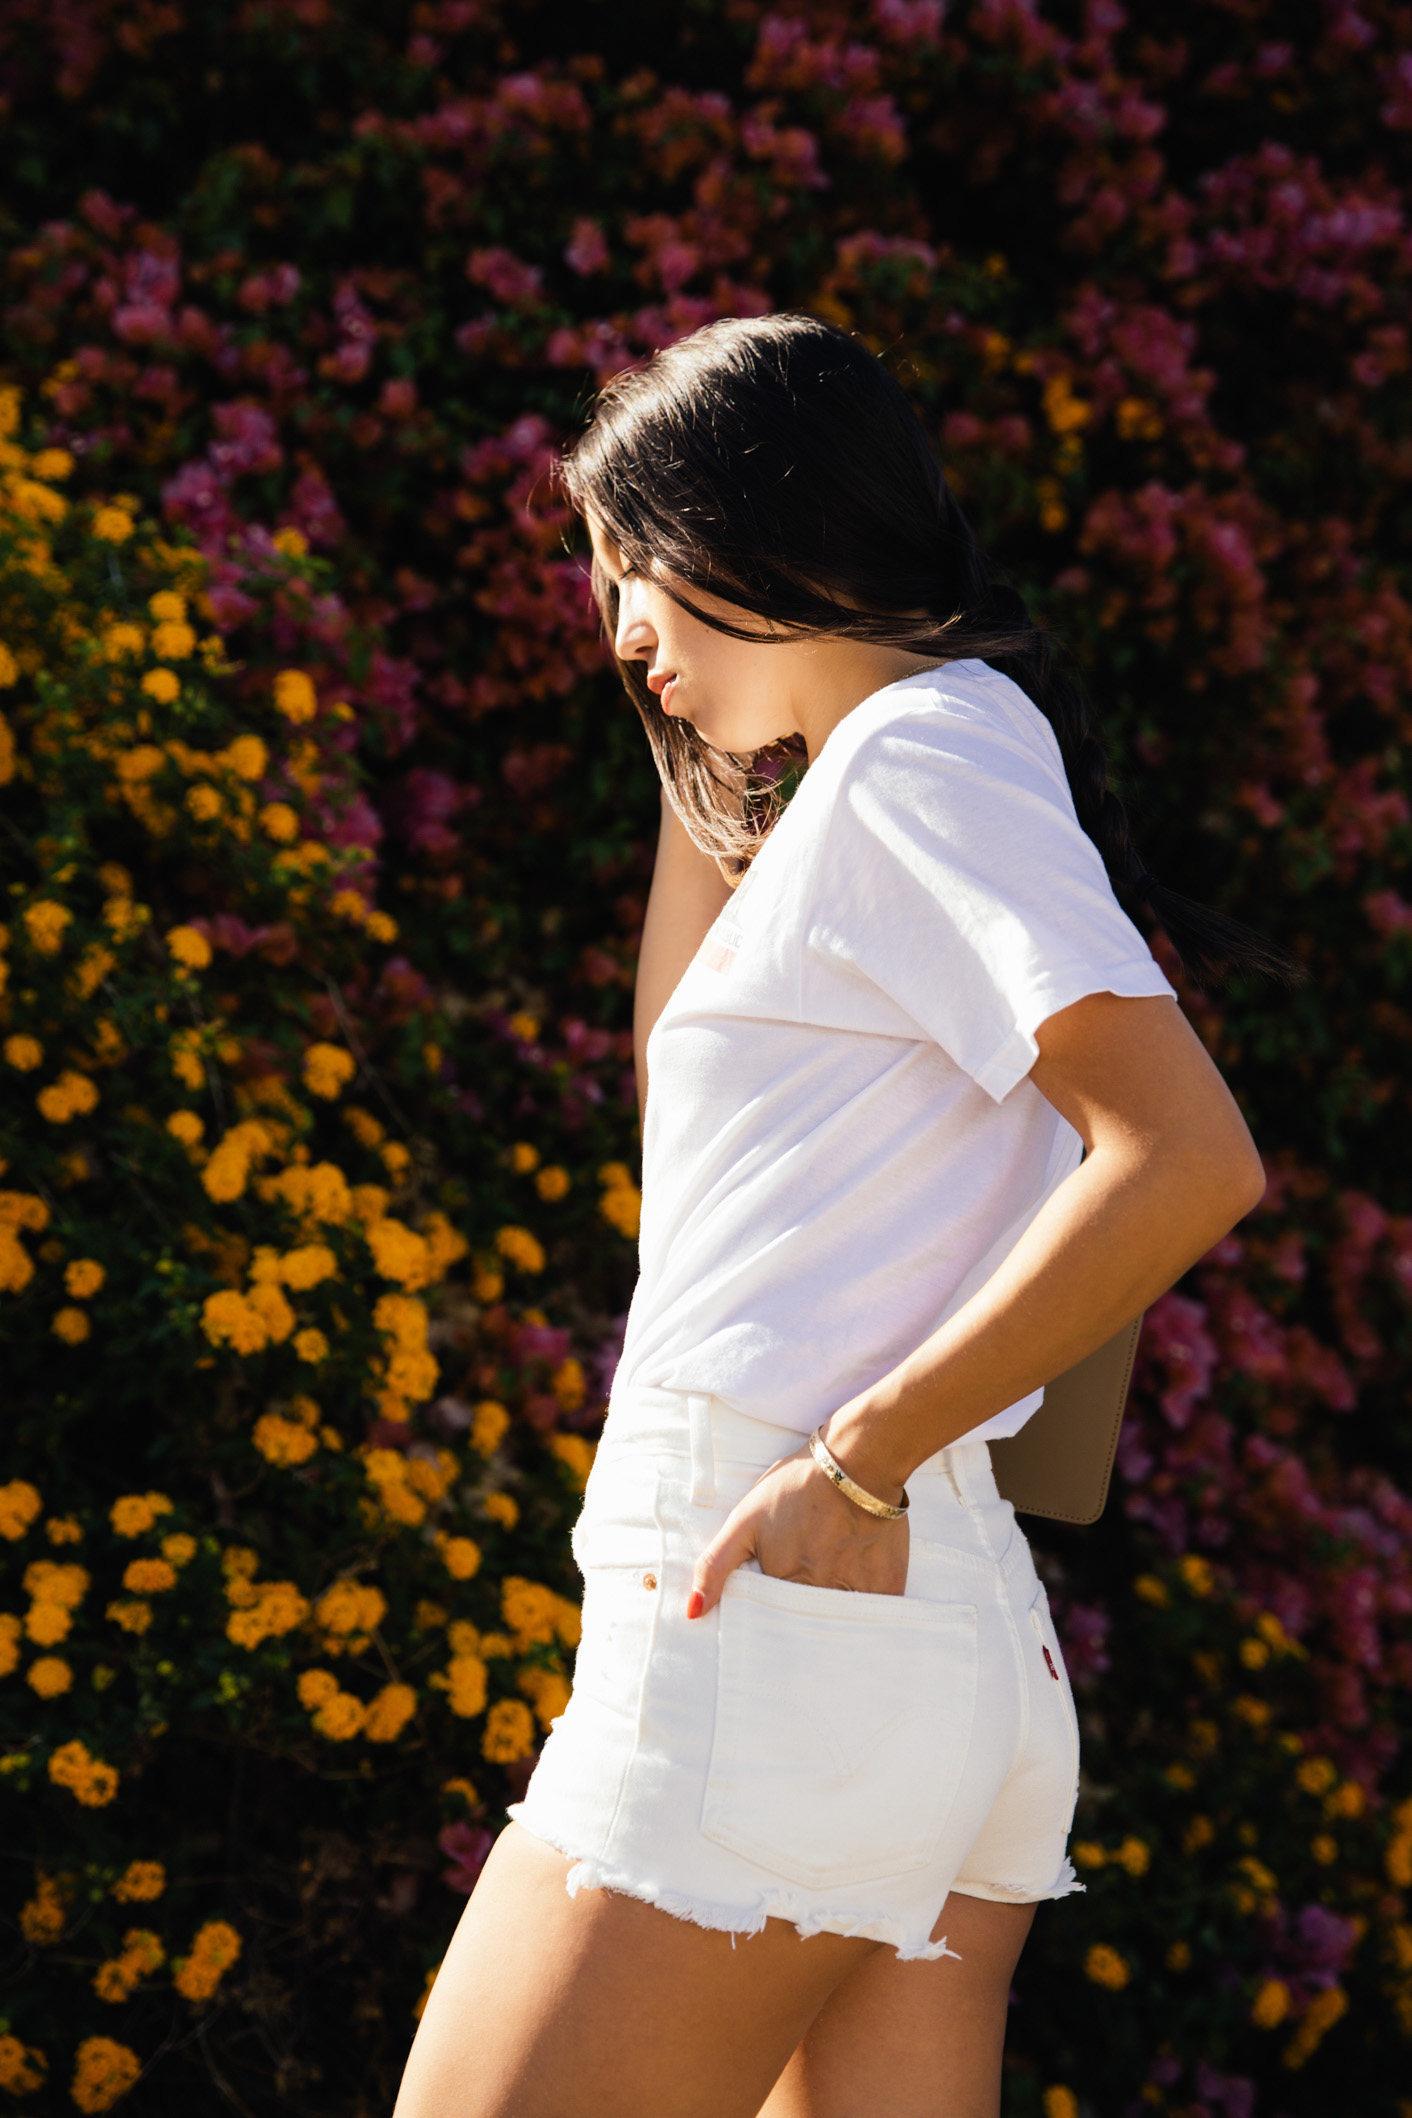 LOVE OR MONEY by Emily Tong wearing all white outfit and California bear tee